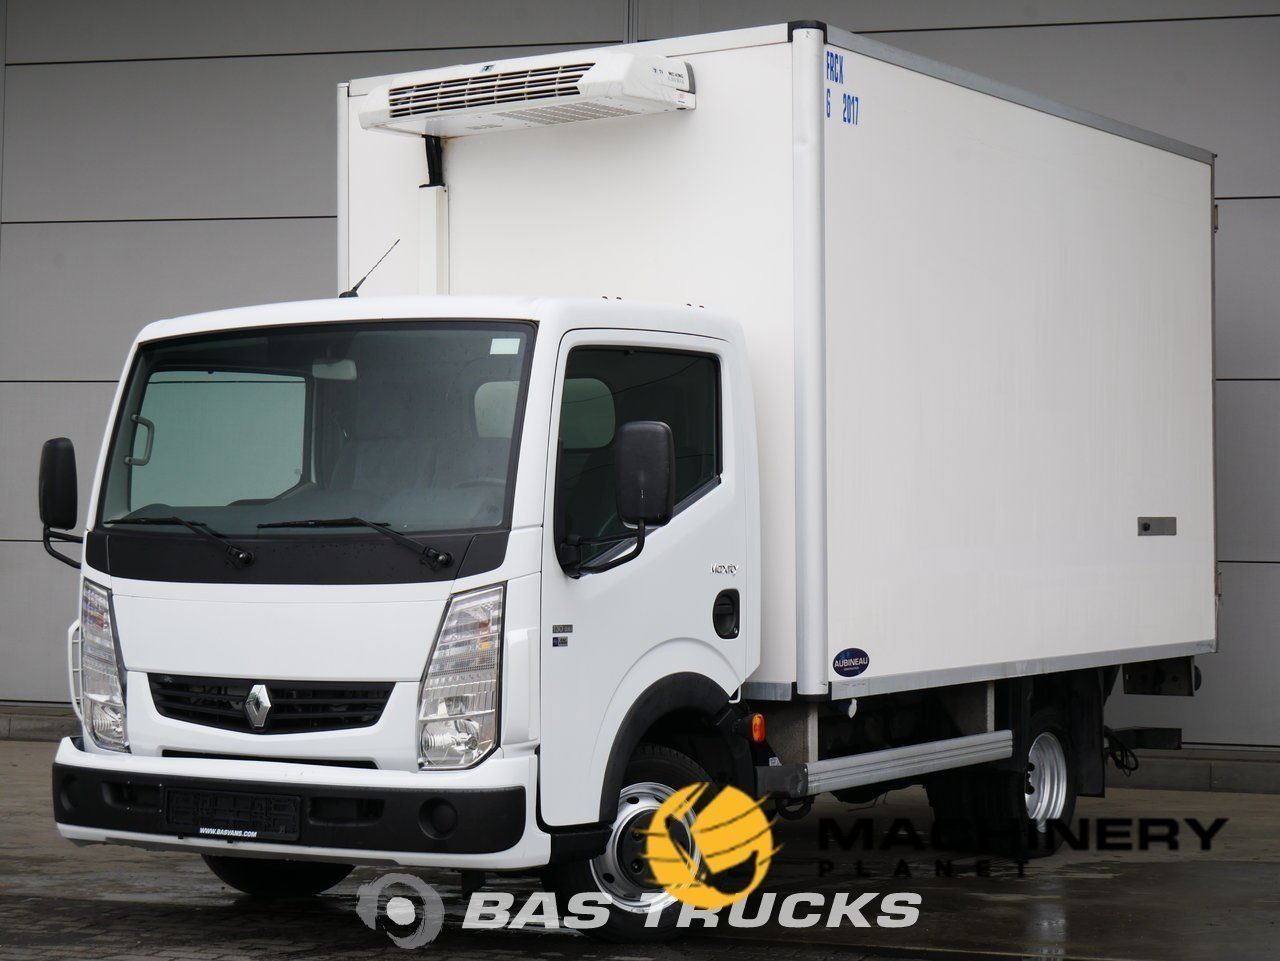 Used-Light-commercial-vehicle-Renault-Maxity-130ps-2011_148621_1-1553937438369_5c9f341e5a31b-1.jpg